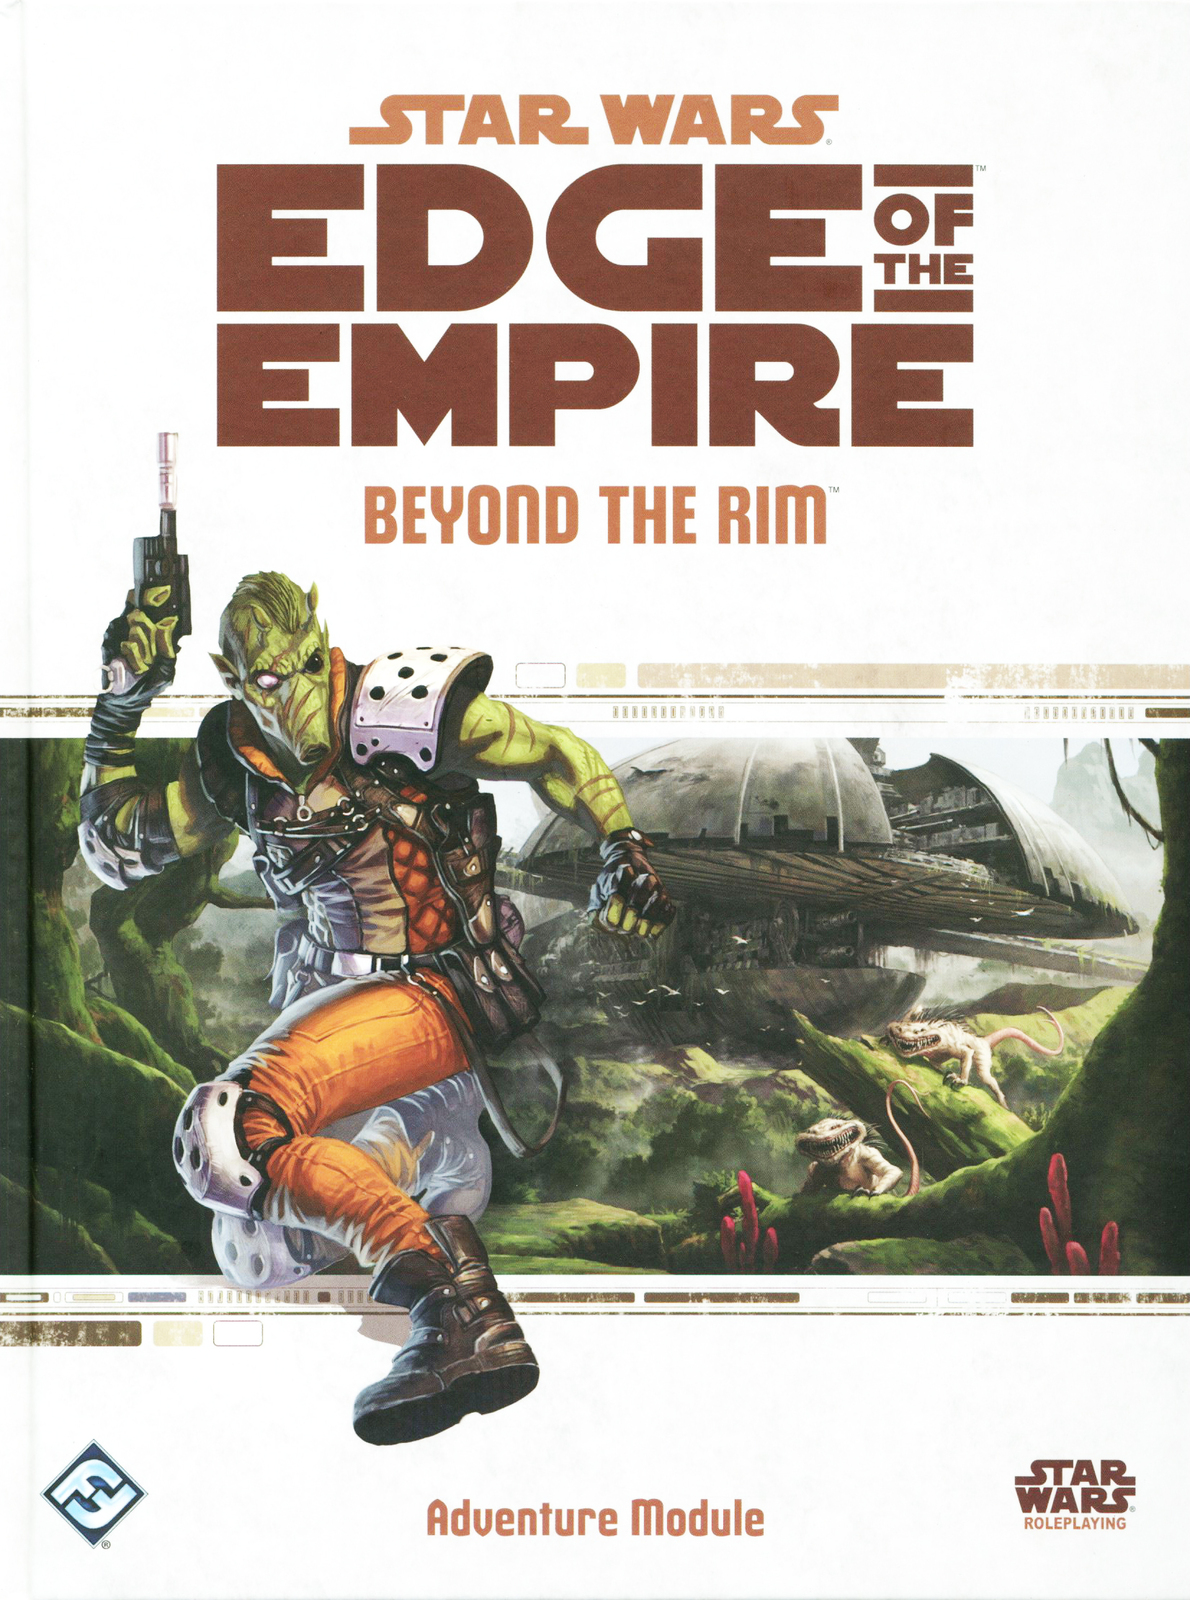 Star Wars Edge of the Empire RPG: Beyond the Rim image